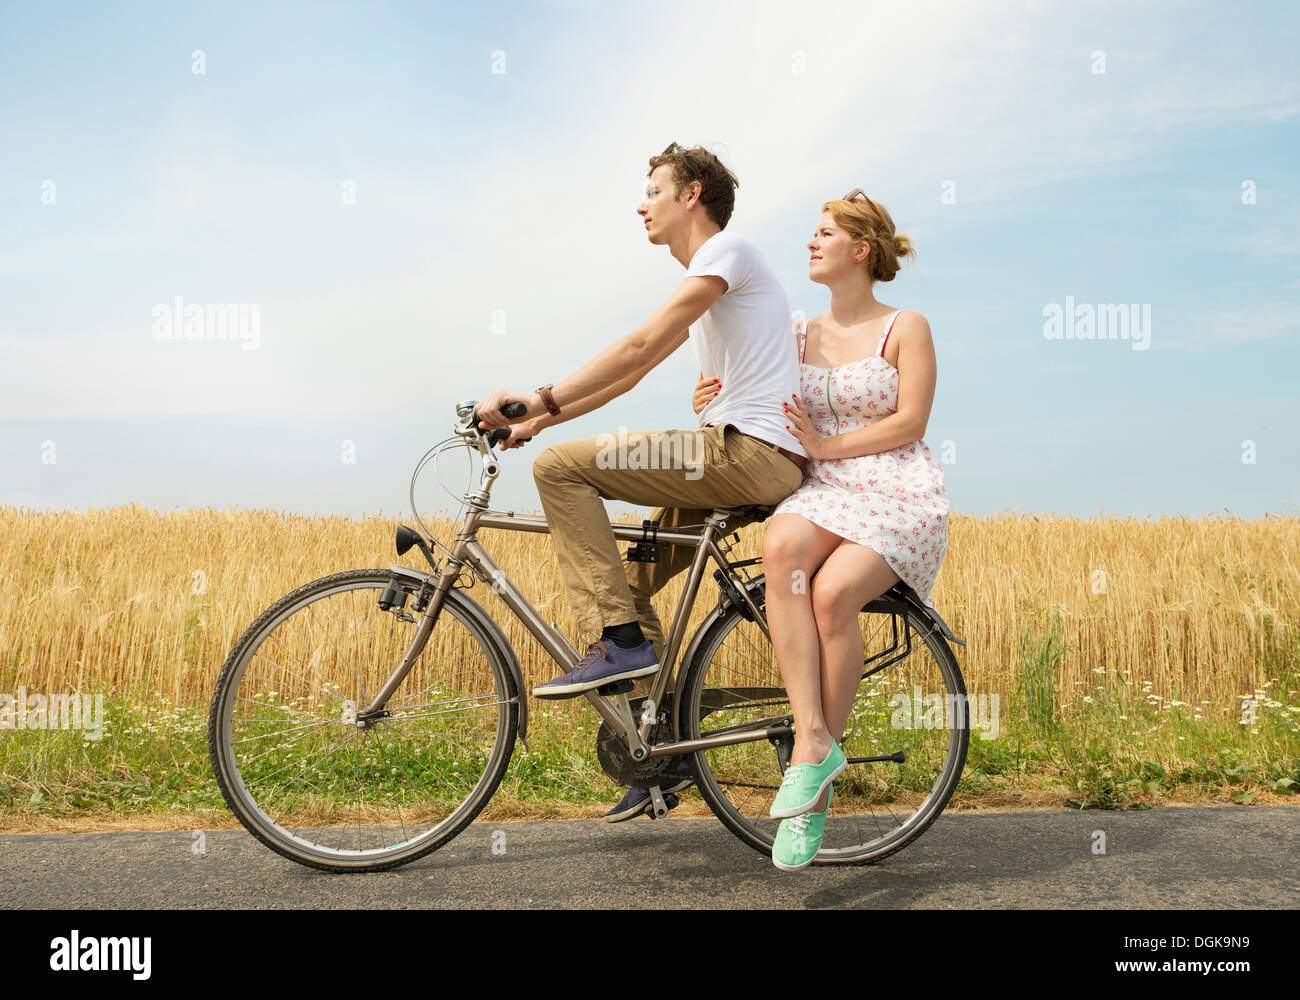 Couple riding bicycle - Stock Image